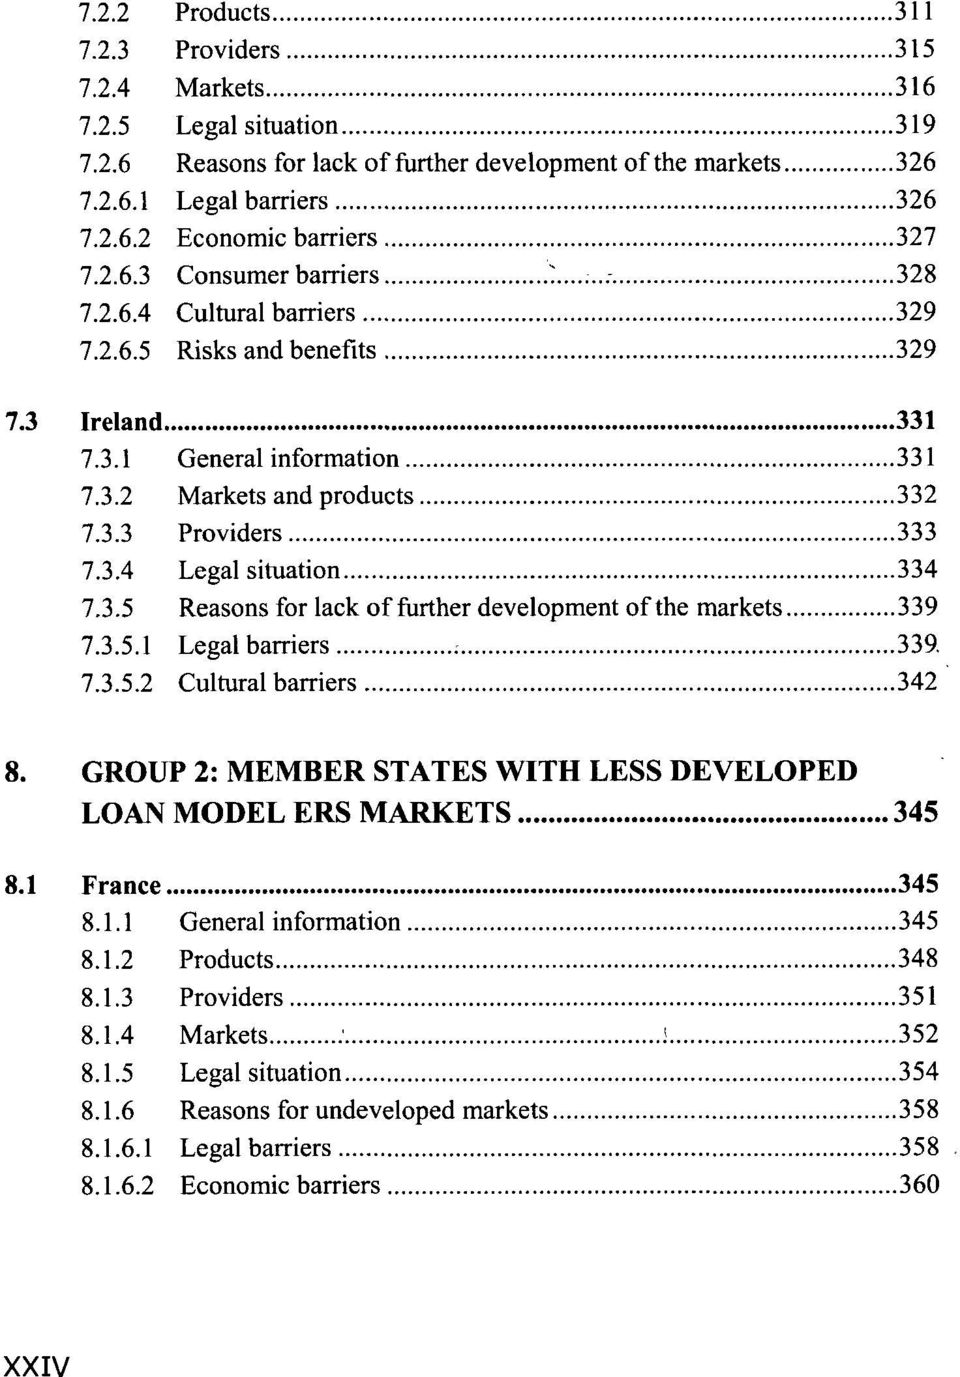 3.5 Reasons for lack of further development of the markets 339 7.3.5.1 Legal barriers 339. 7.3.5.2 Cultural barriers 342 8. GROUP 2: MEMBER STATES WITH LESS DEVELOPED LOAN MODEL ERS MARKETS 345 8.